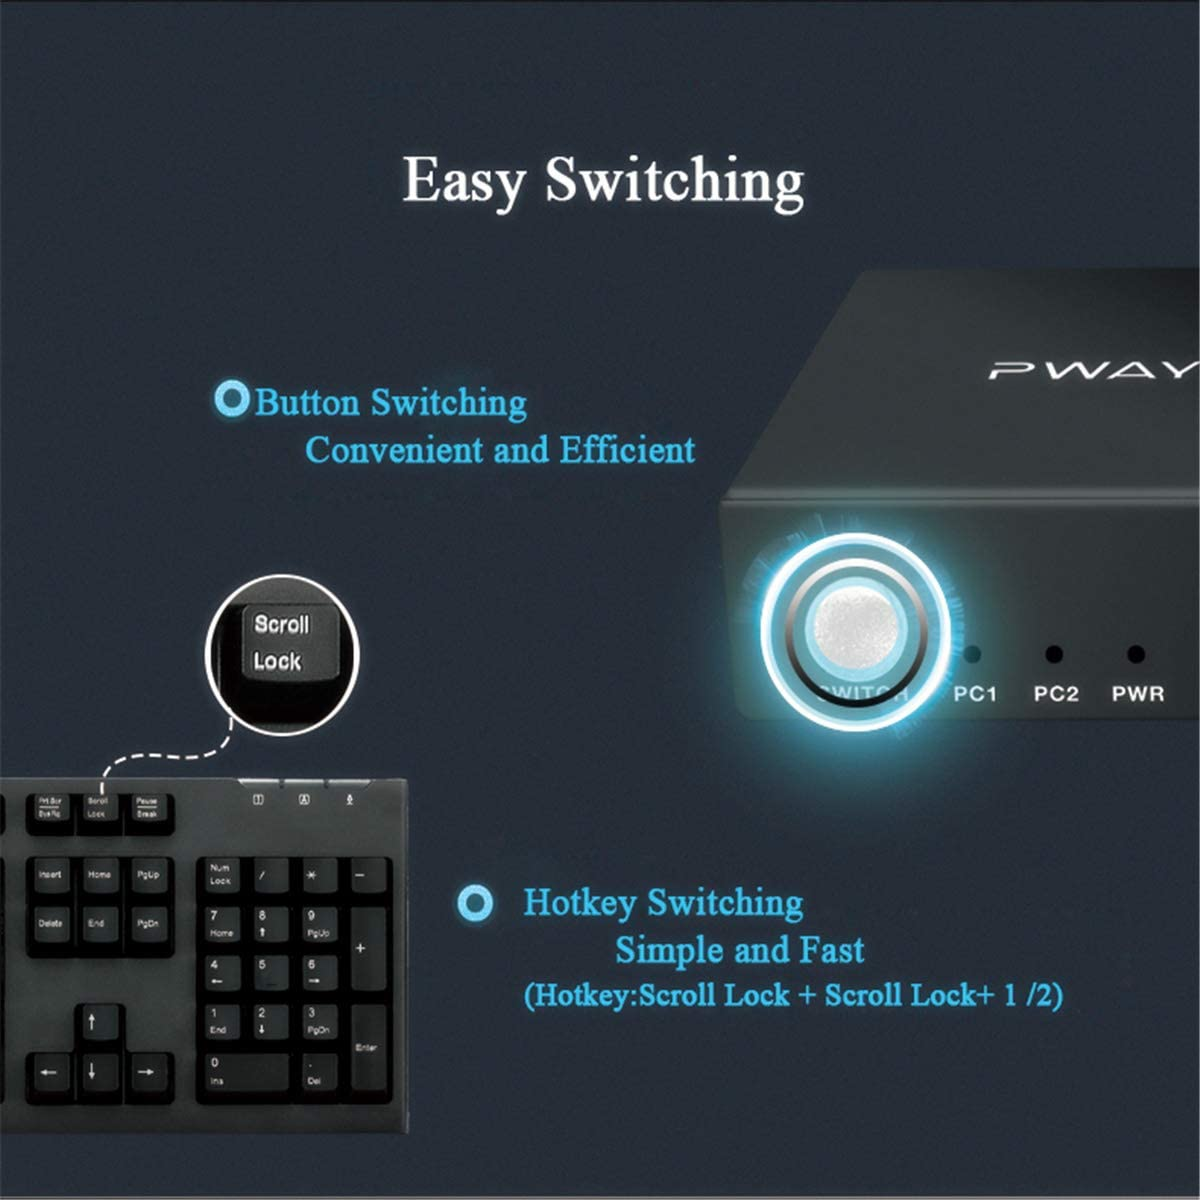 with Cables GHT Dual Monitor HDMI KVM Switch 4 Port Hotkey Switch USB Powered 2 USB 2.0 Hub UHD 4K@30Hz YUV4:4:4 Downward Compatible